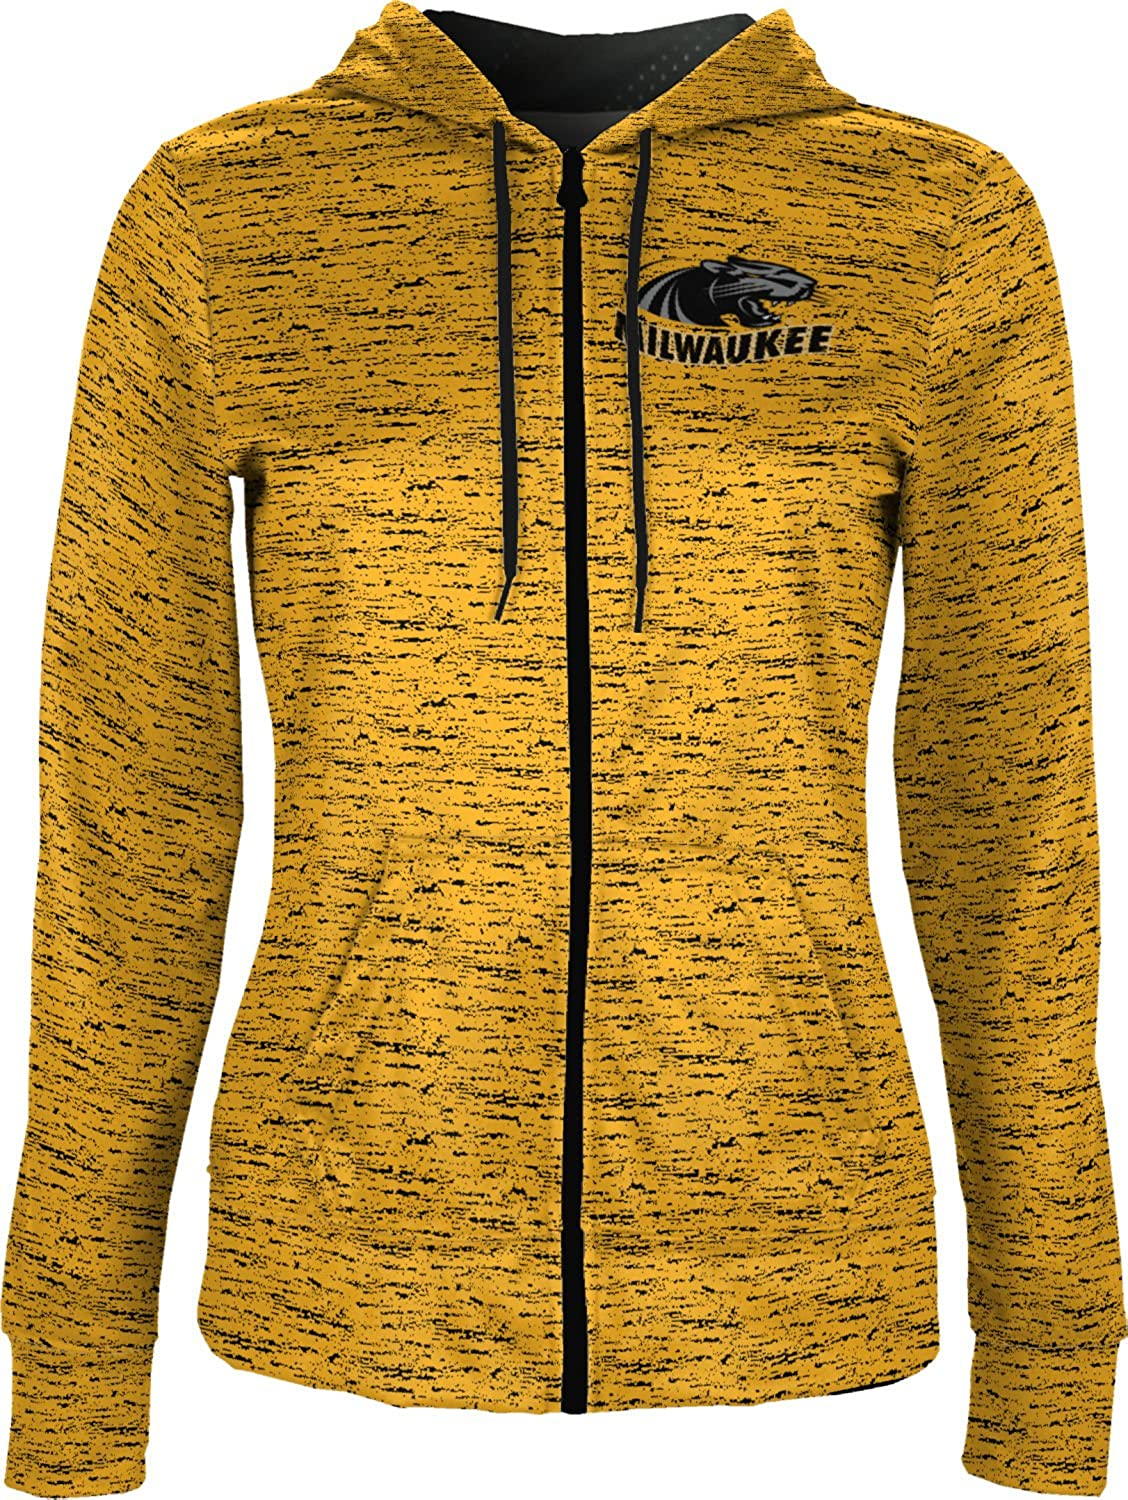 Brushed University of Wisconsin-Milwaukee Girls Zipper Hoodie School Spirit Sweatshirt